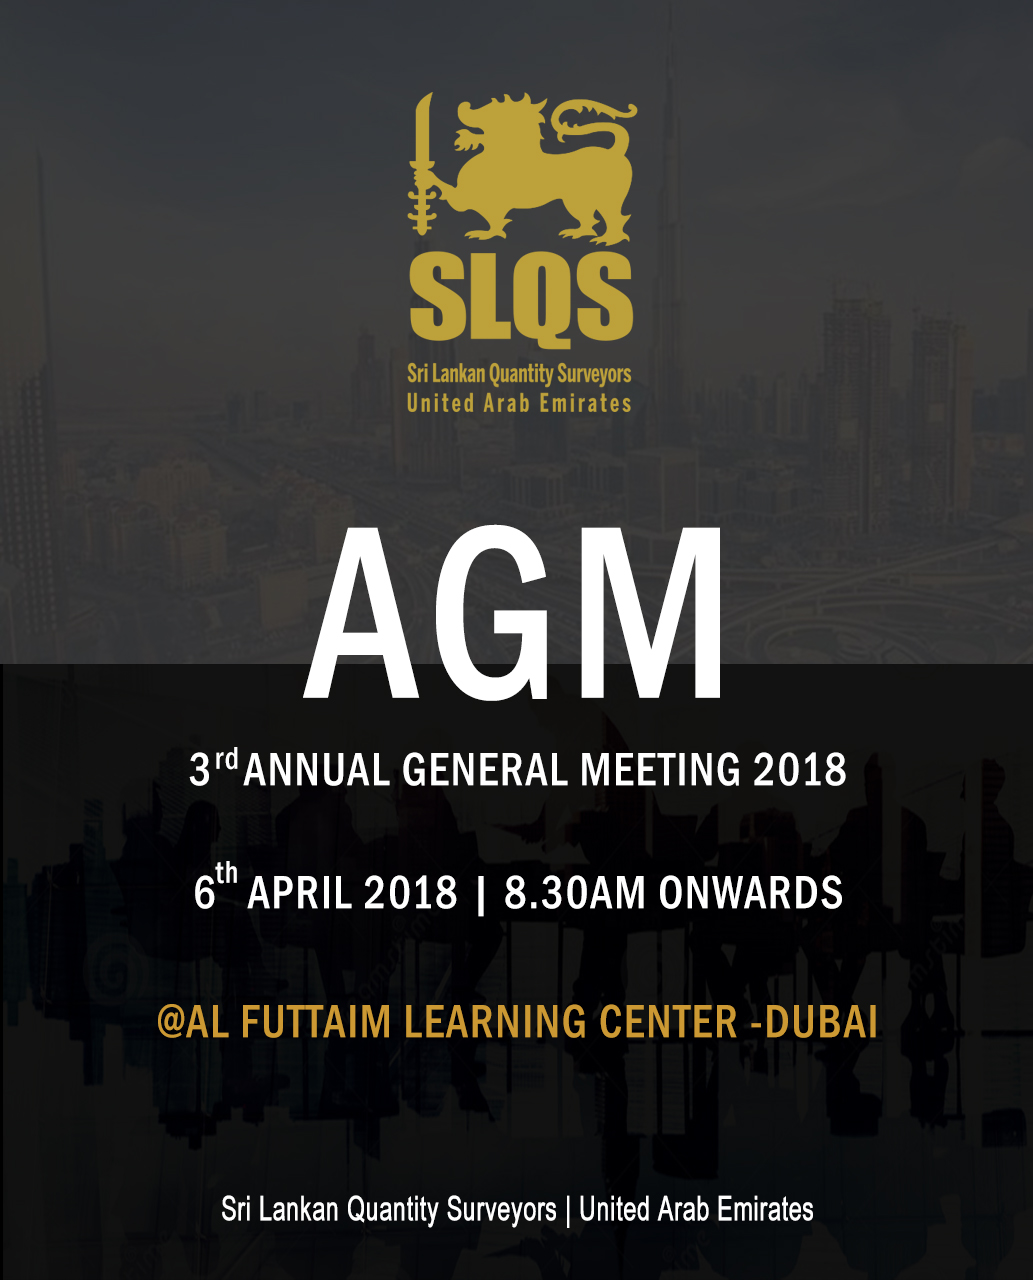 3rd Annual General Meeting